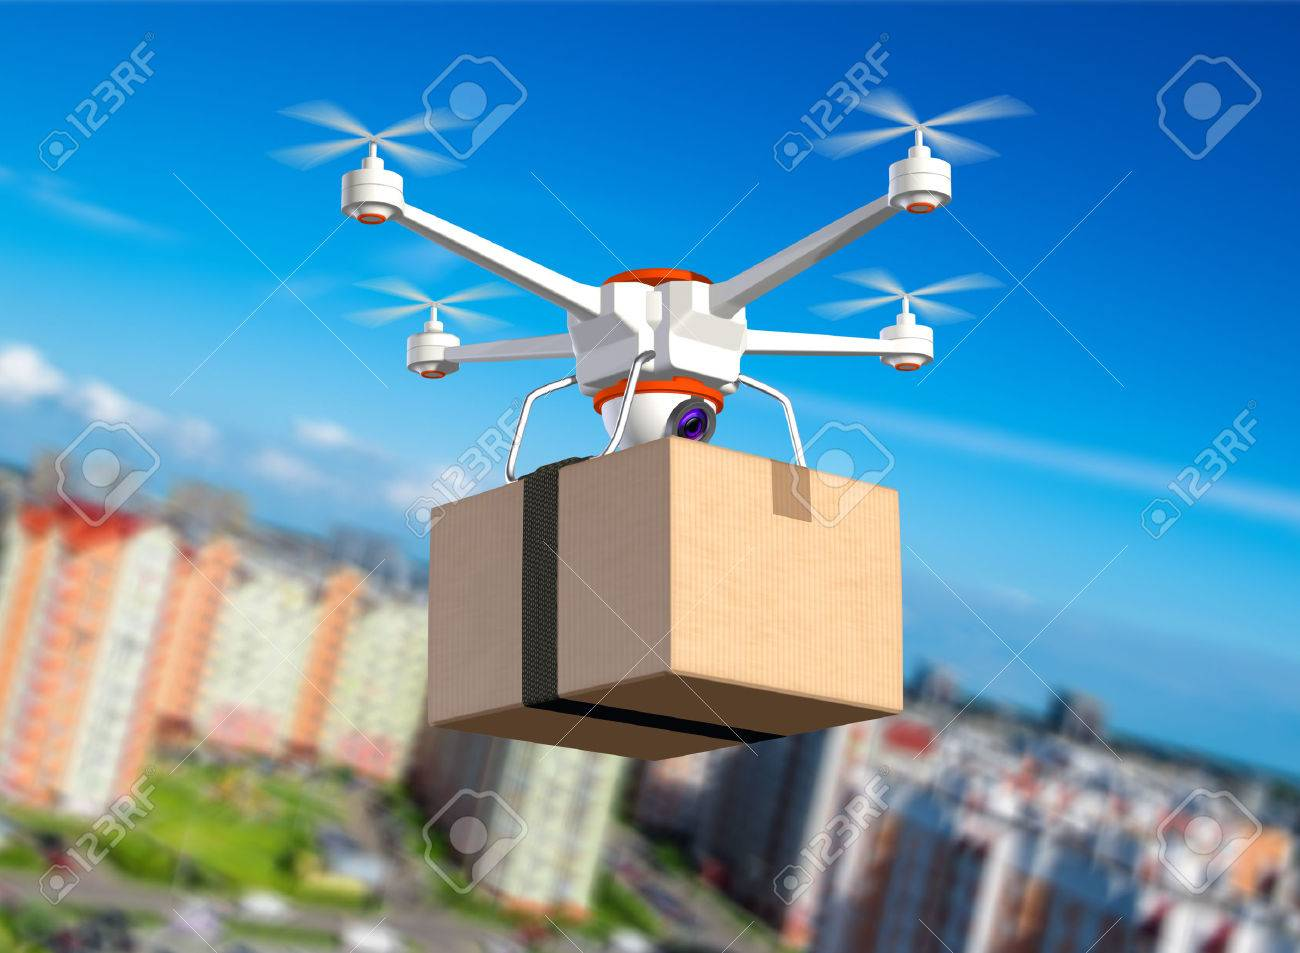 Quadrocopter with cardboard package, 3d illustration - 42077153